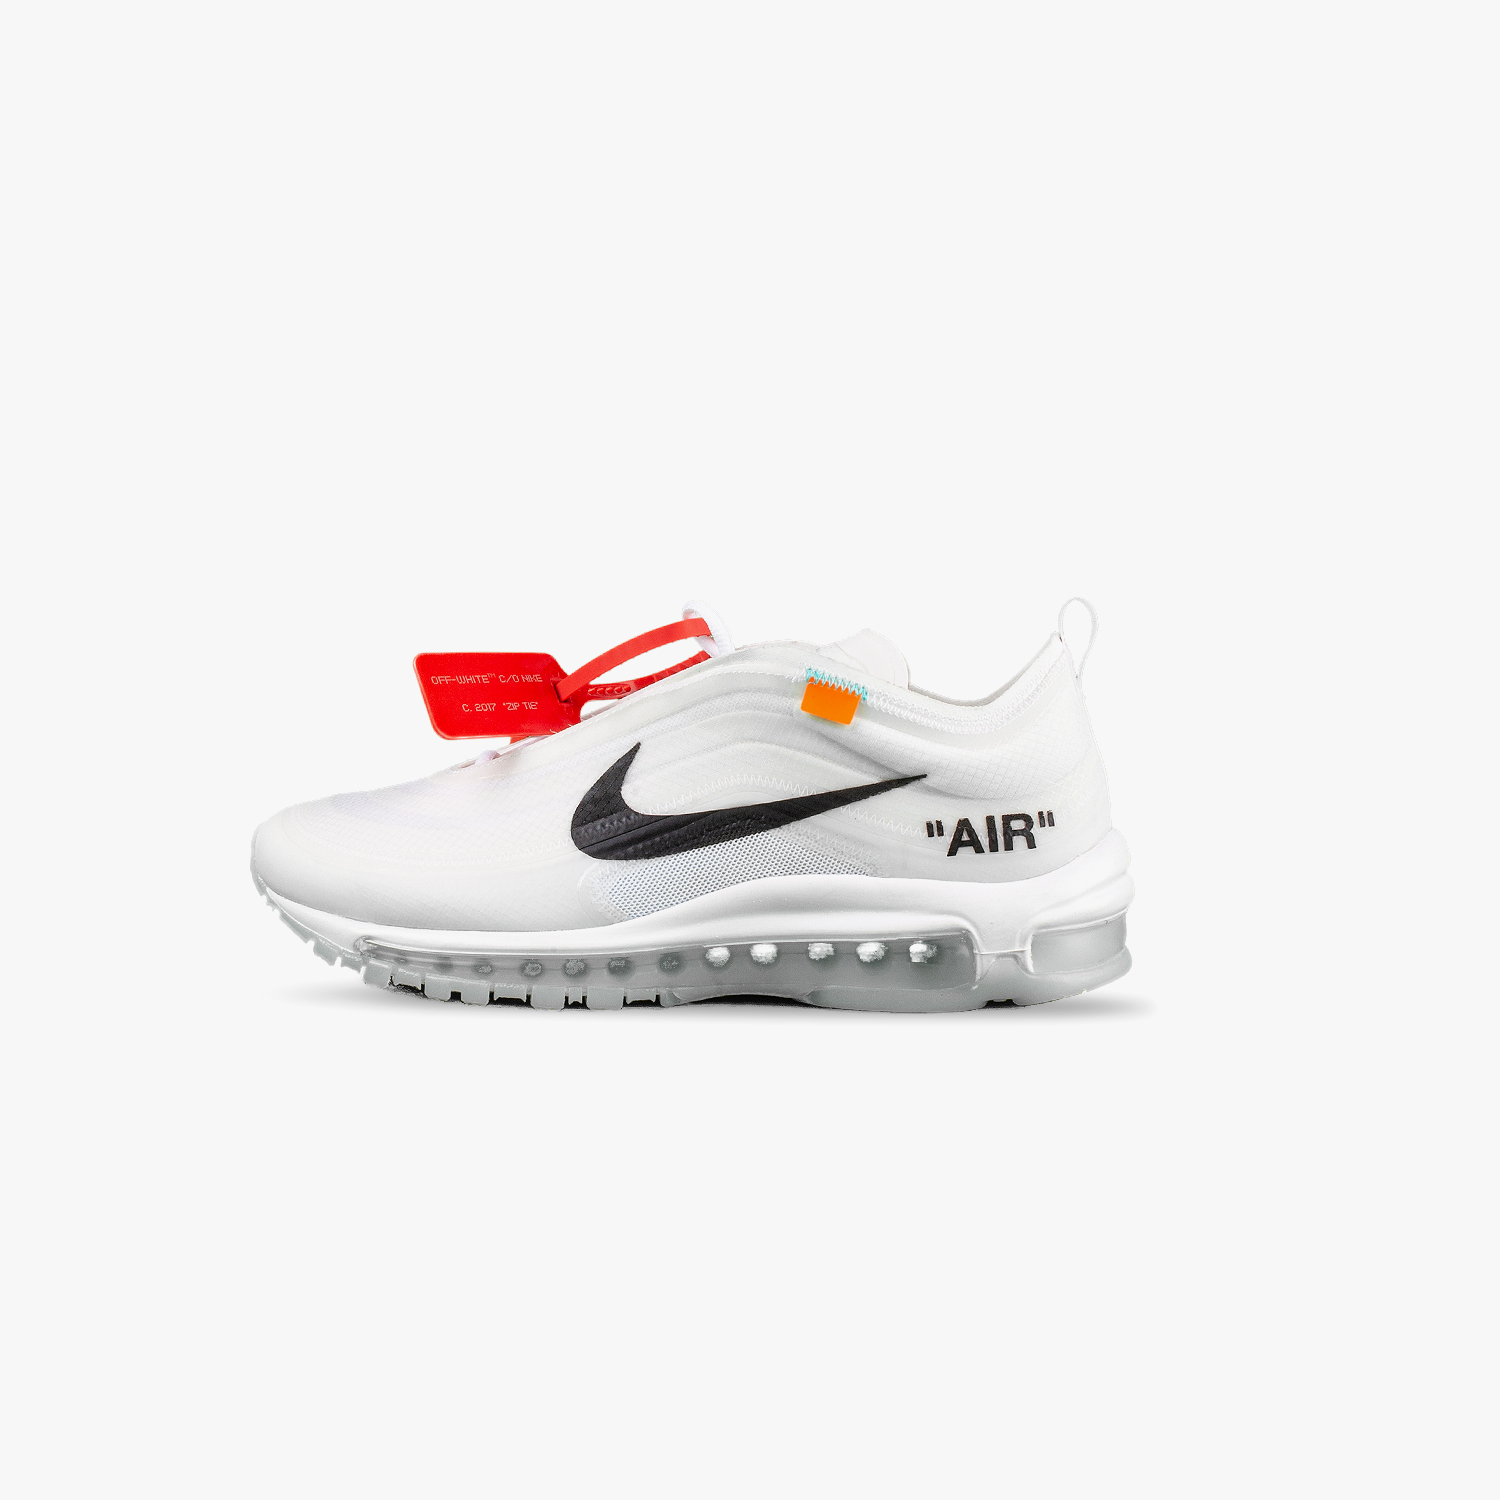 Nike The Ten Air Max 97 'Off White' Release Date. Nike